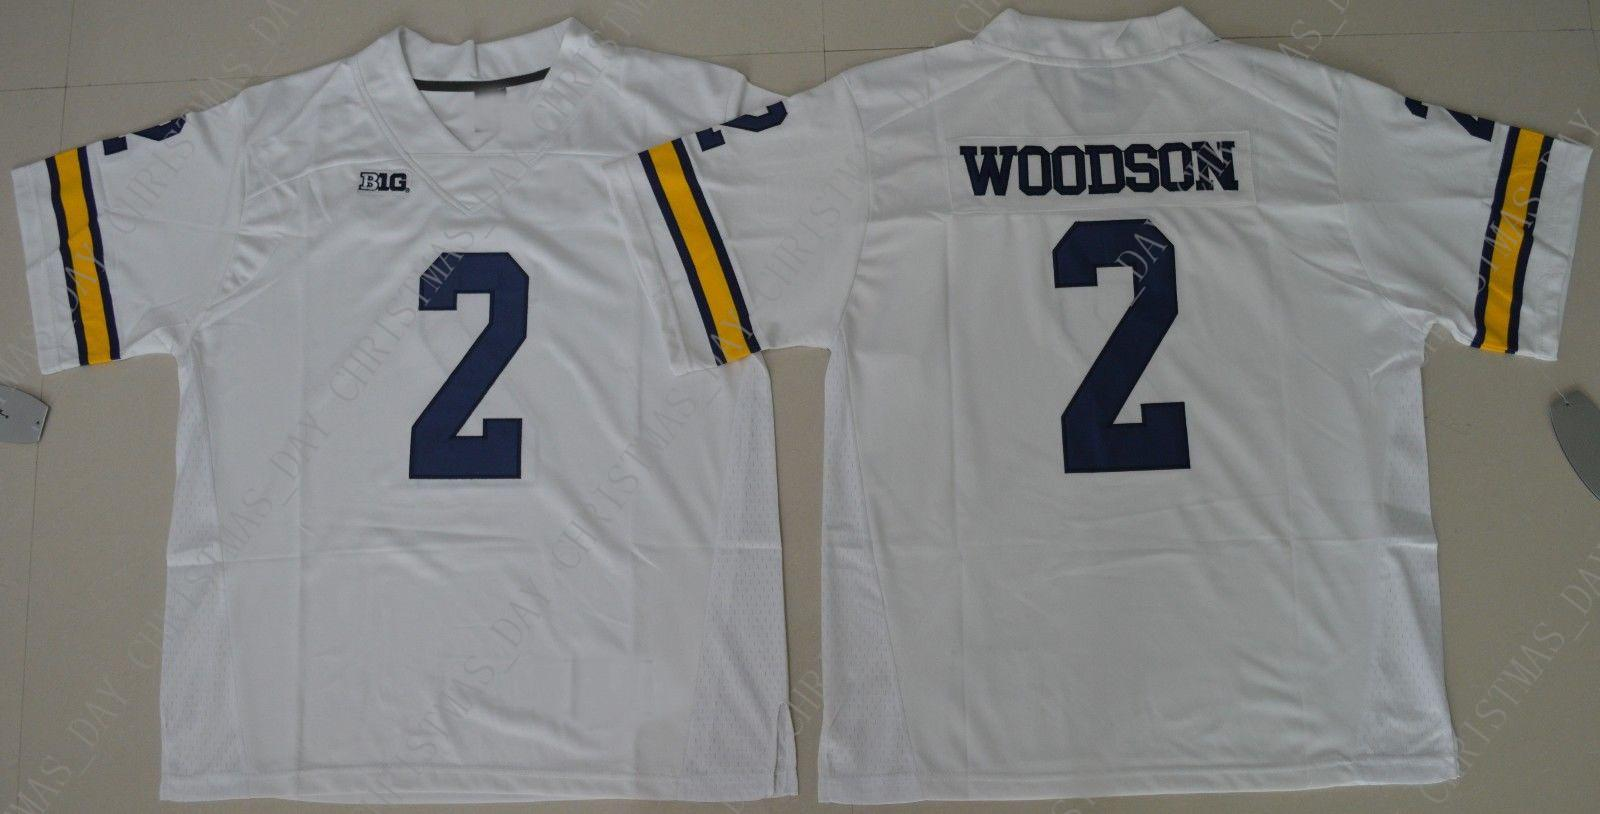 best service cde66 7d7f5 Cheap custom Michigan Wolverines Charles Woodson #2 College Football Jersey  White Stitched Customize any number name MEN WOMEN YOUTH XS-5XL